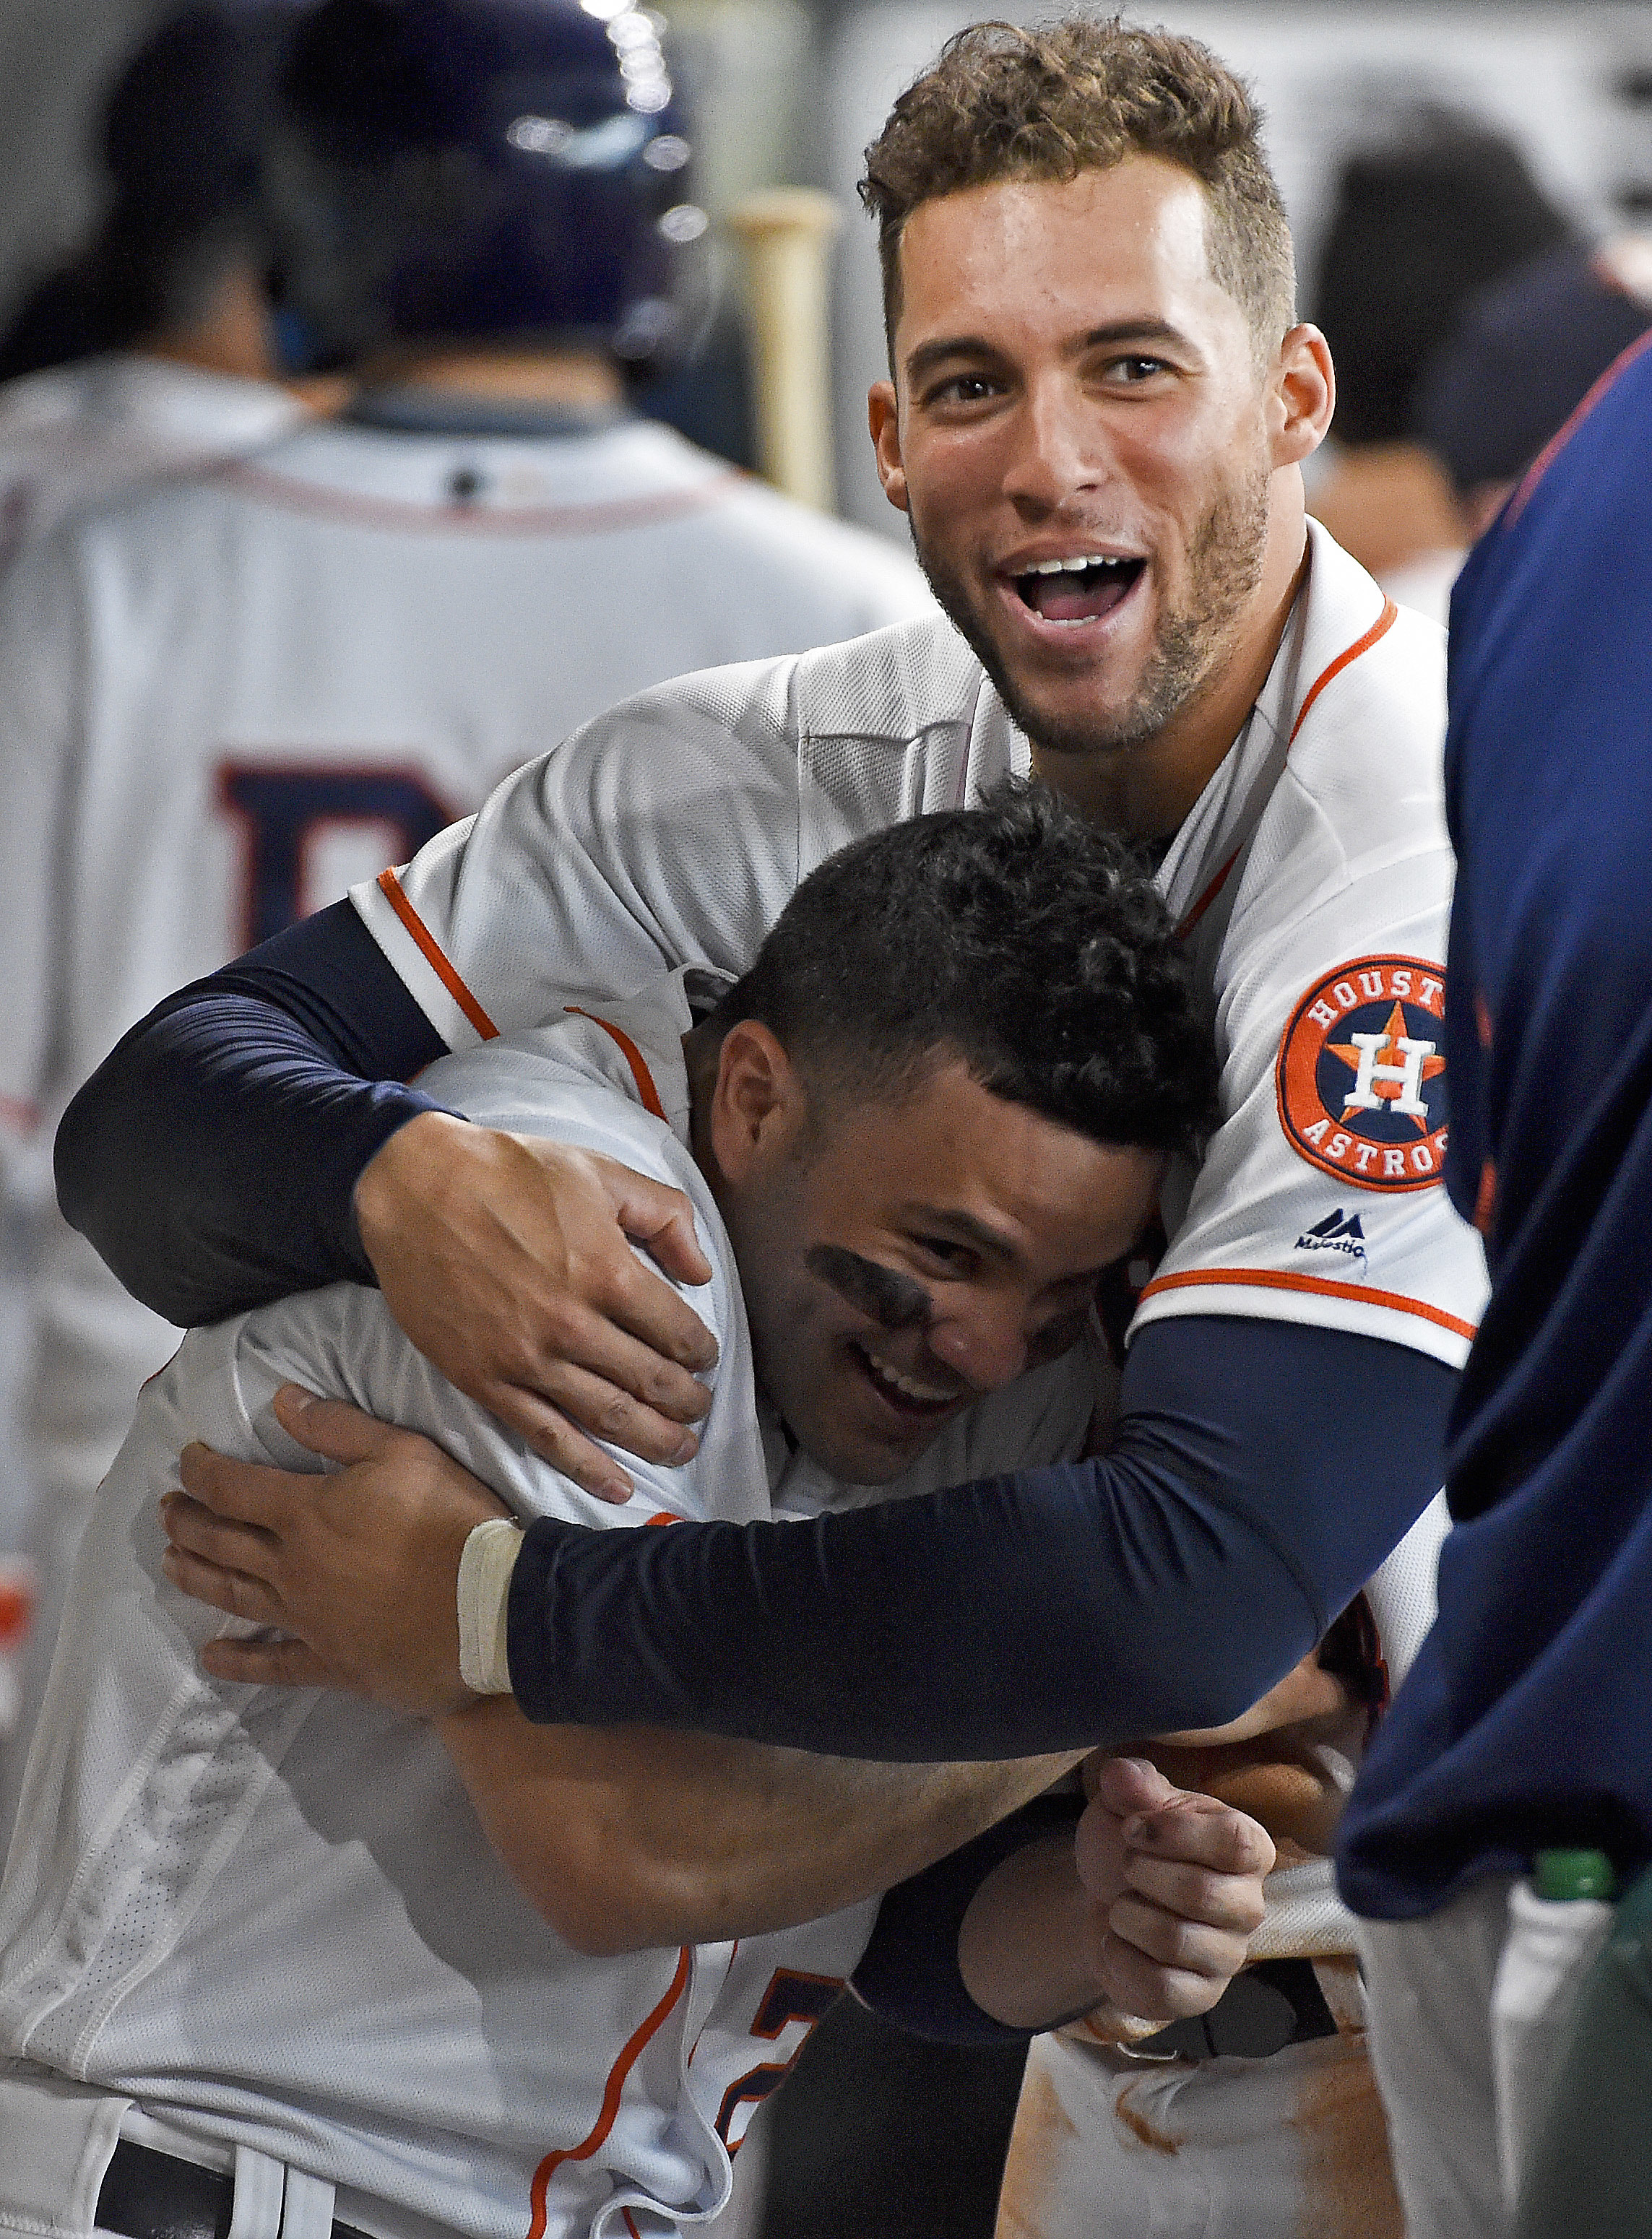 Houston Astros' George Springer, right, hugs Jose Altuve after Altuve scored the go-ahead run in the eighth inning of a baseball game against the Oakland Athletics, Wednesday, Aug. 31, 2016, in Houston. The Astros won 4-3. (AP Photo/Eric Christian Smith)